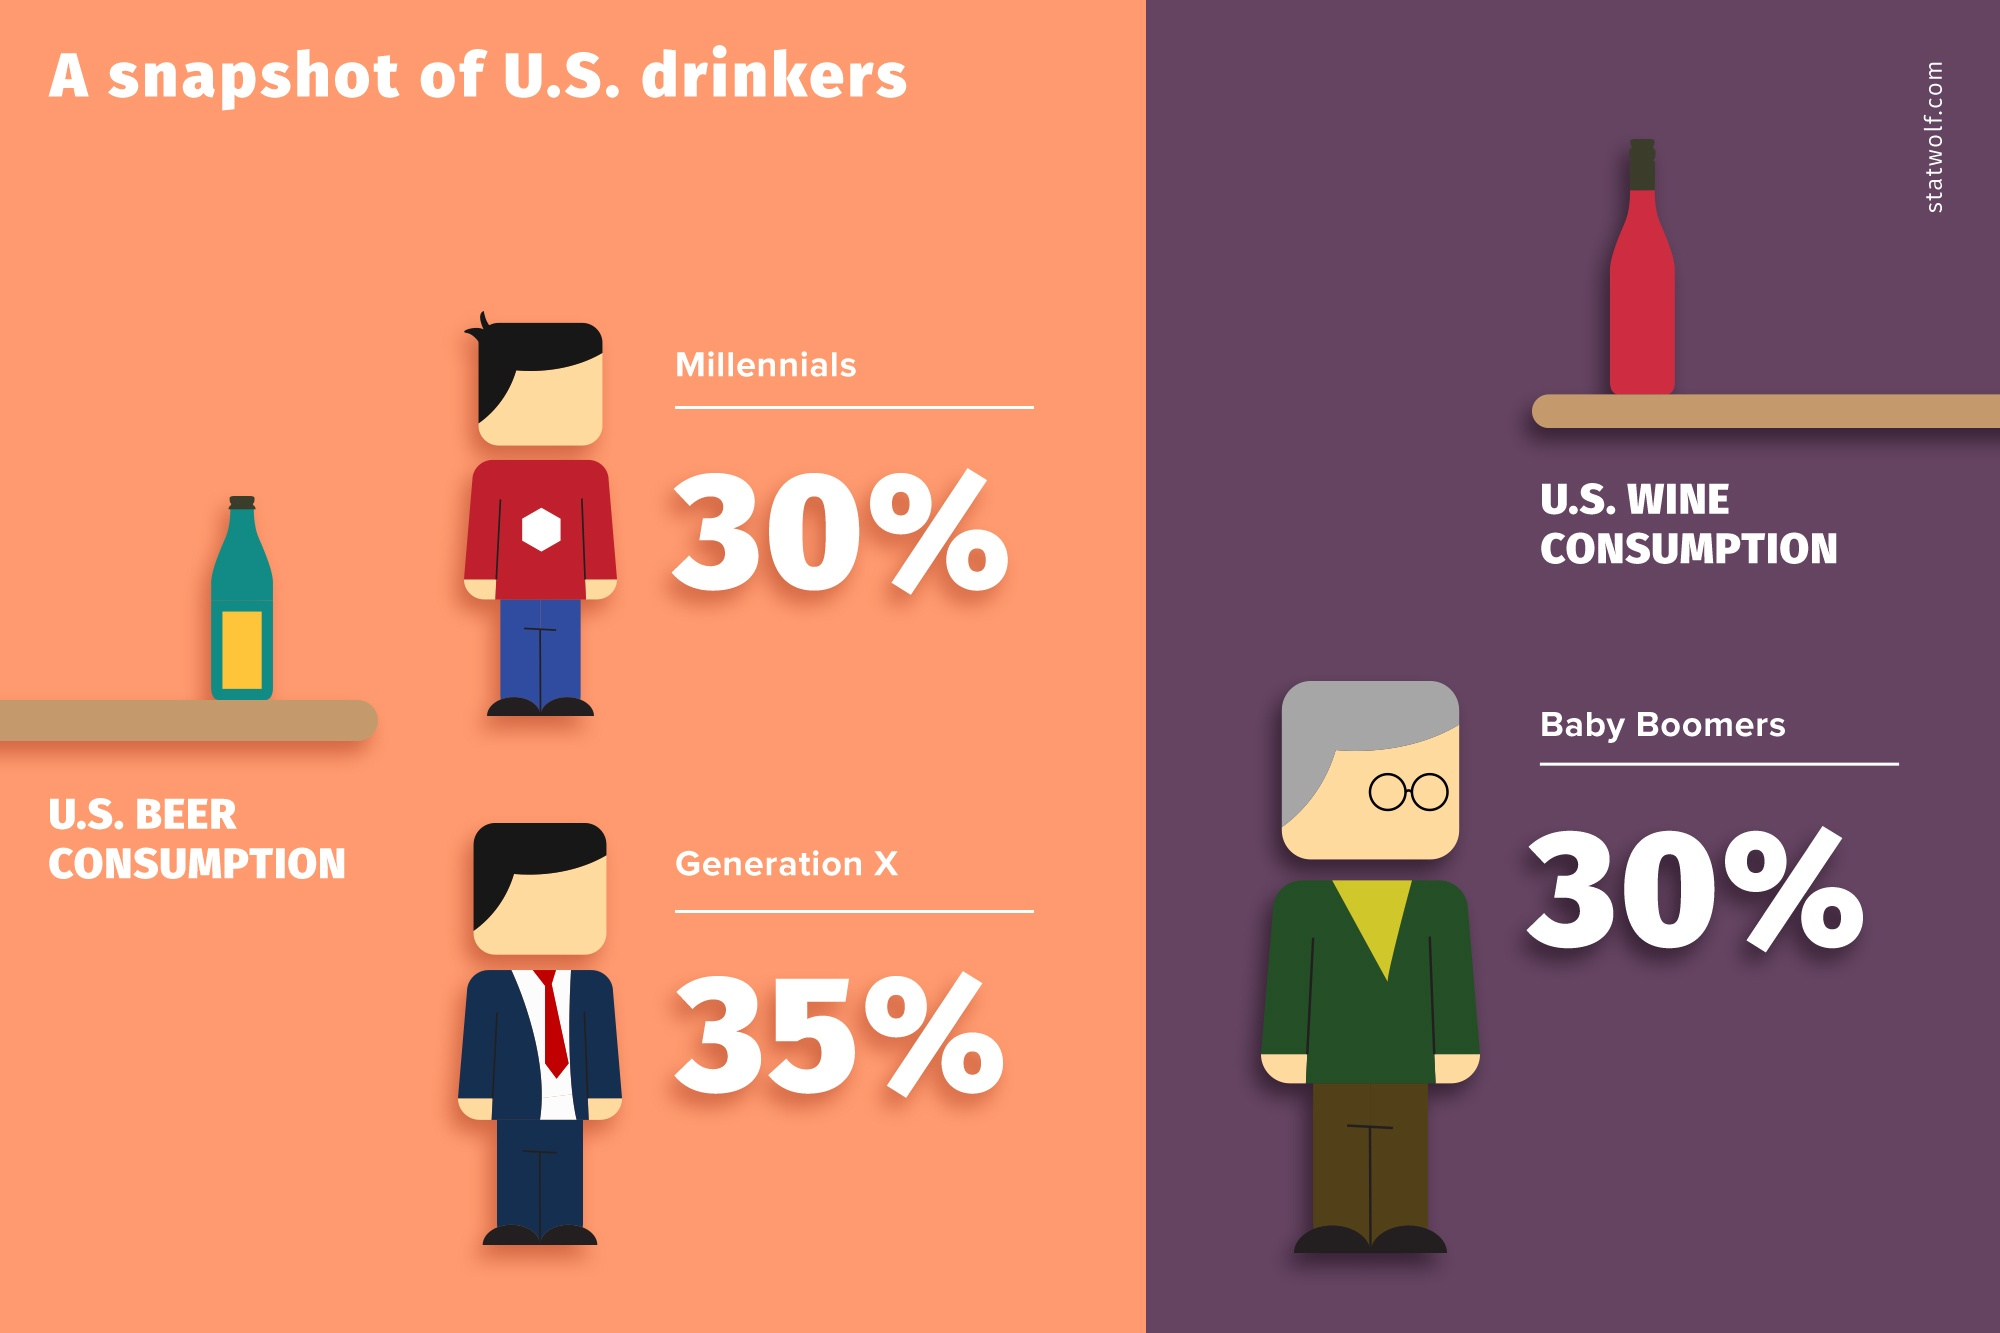 A Snapshot of U.S Drinkers